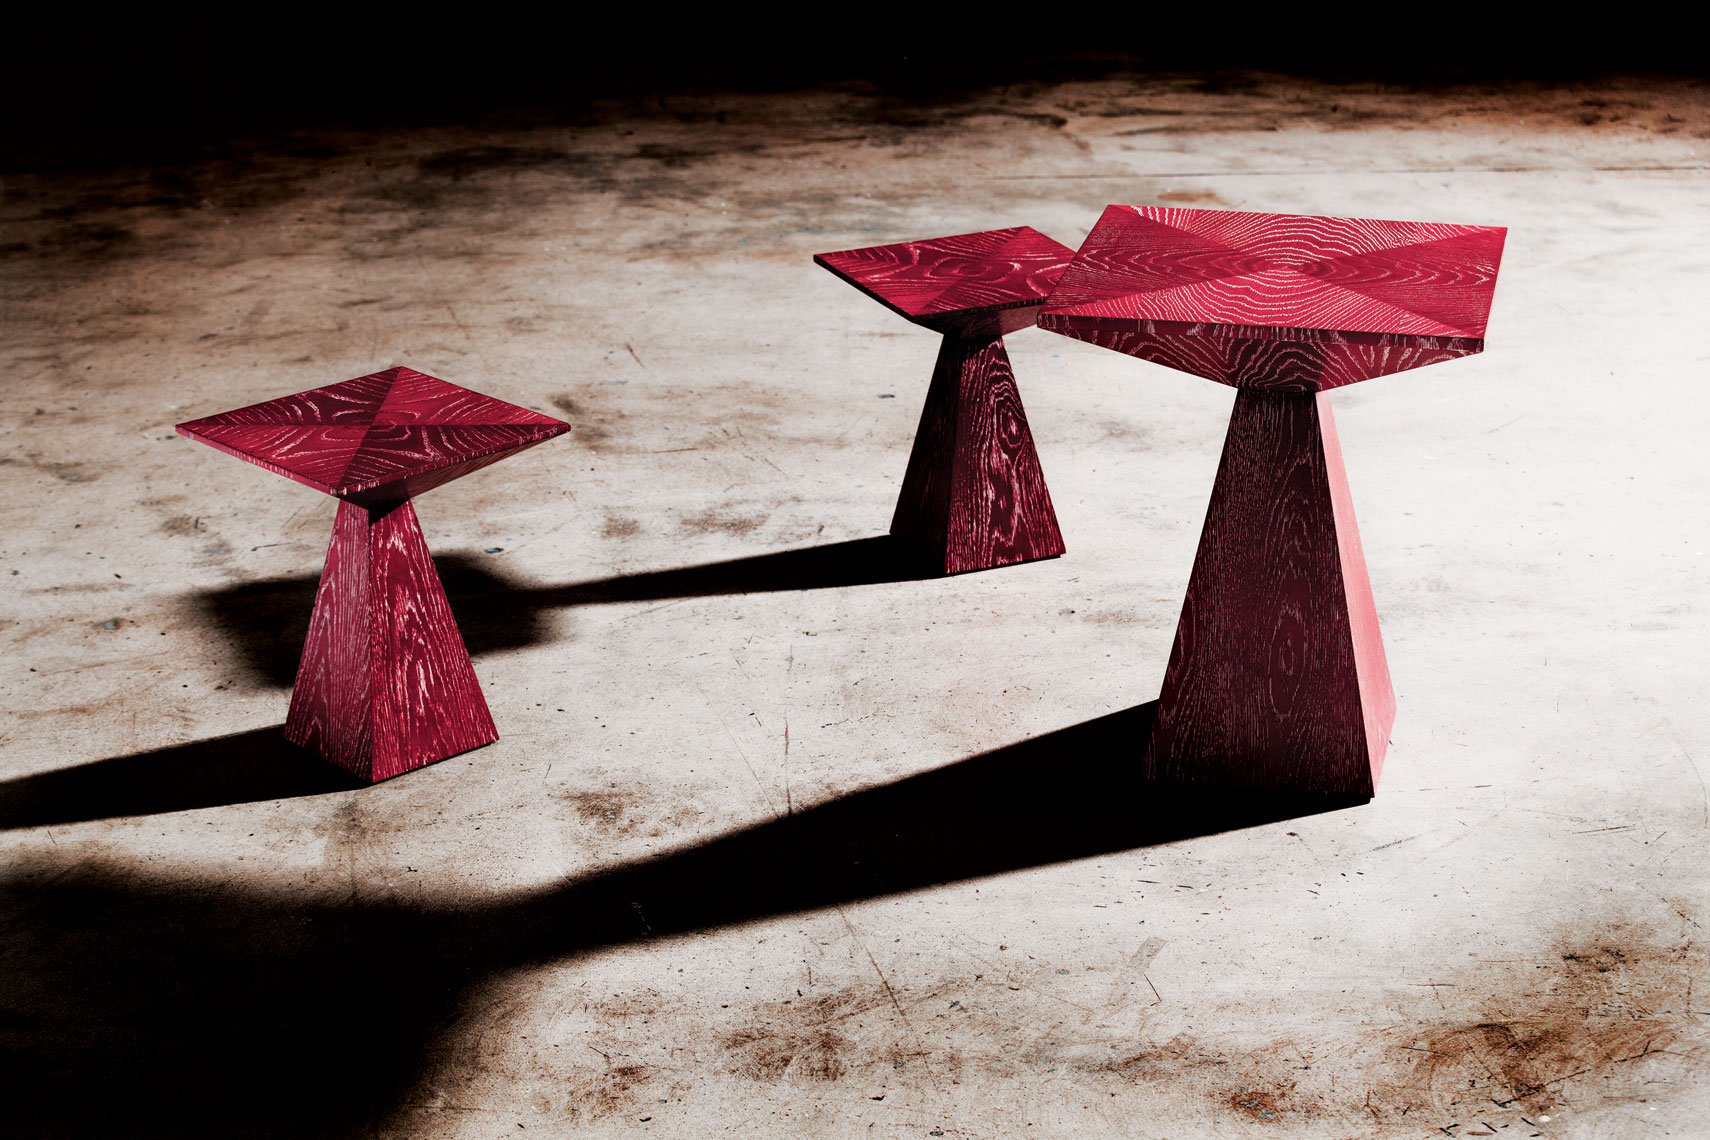 Red tables on concrete